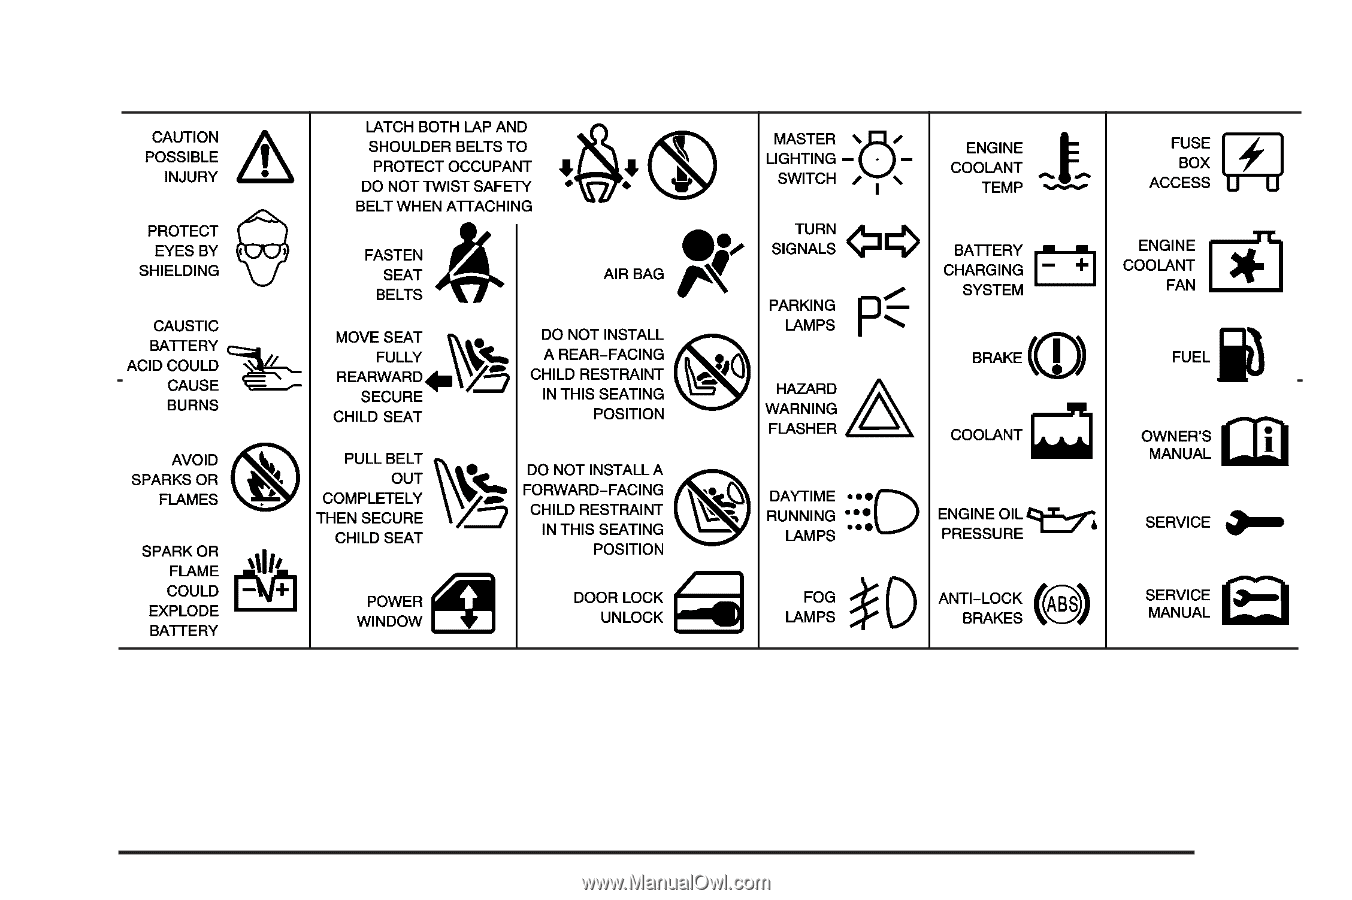 These are some examples of vehicle symbols you may find on your vehicle: